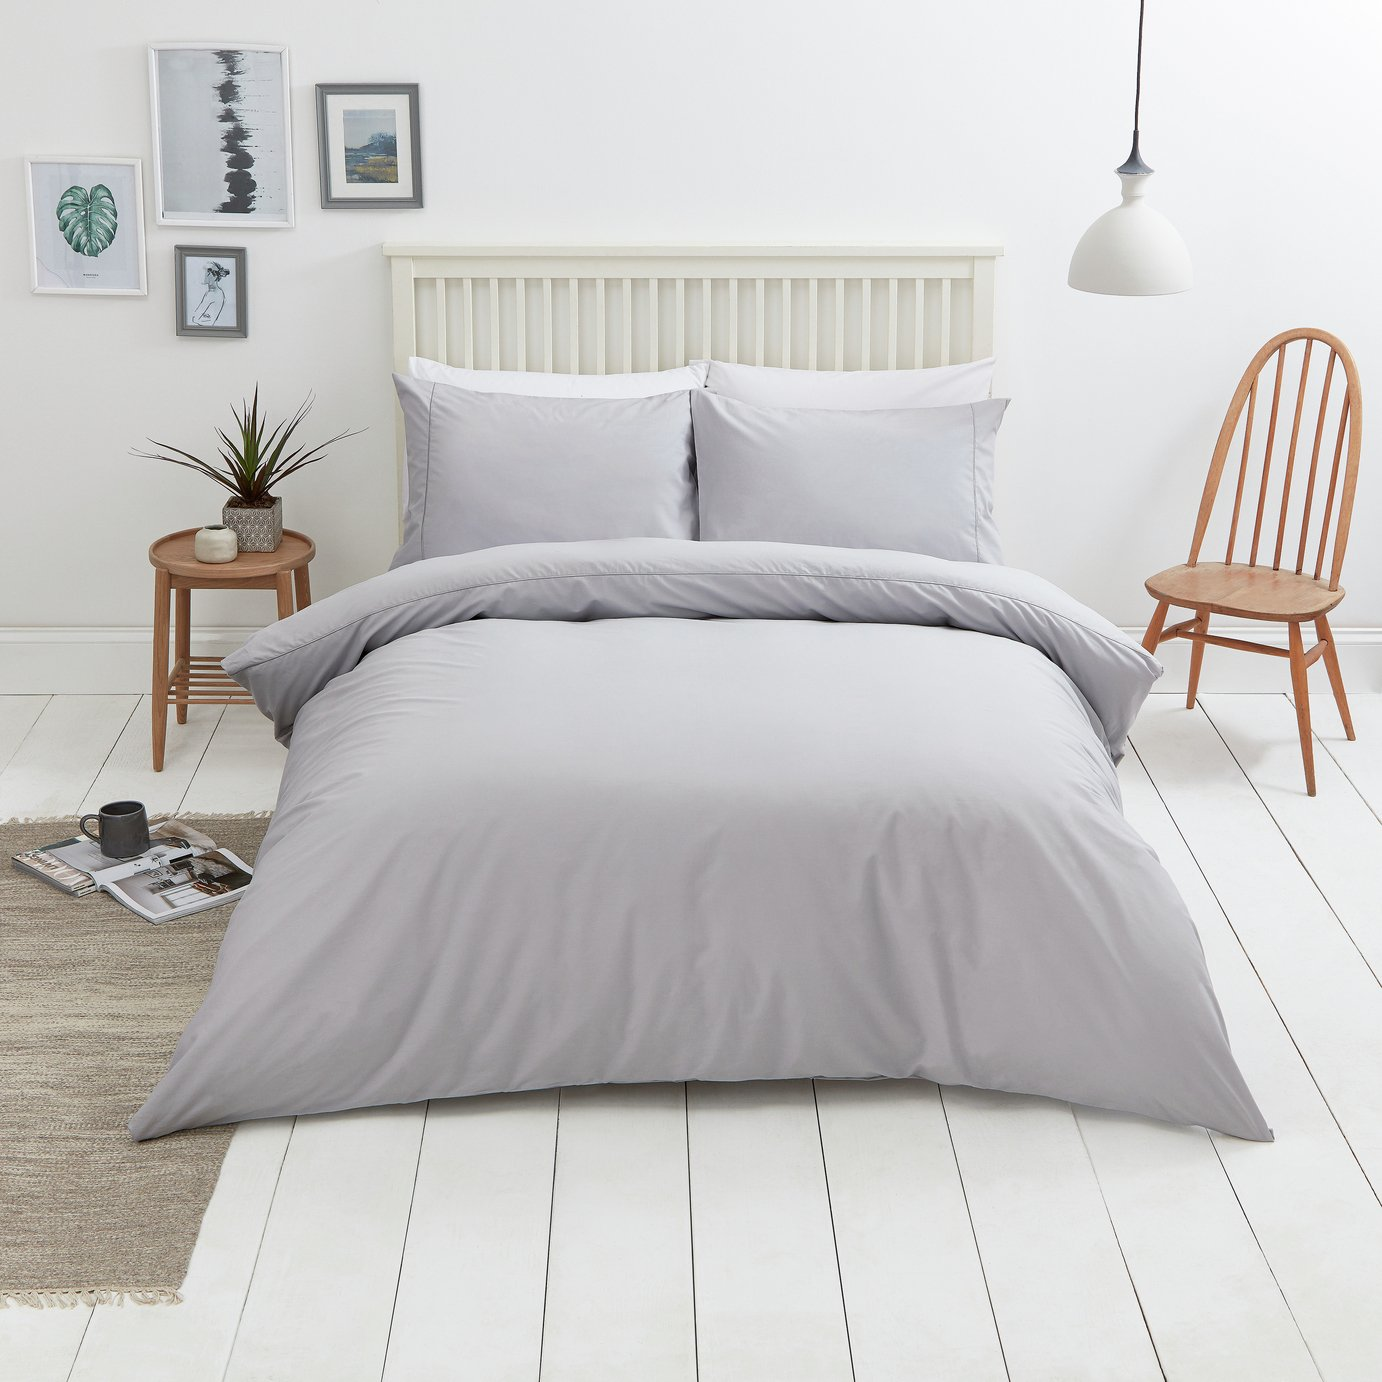 Sainsbury's Home Cool Cotton Soft Grey Bedding Set - S.King